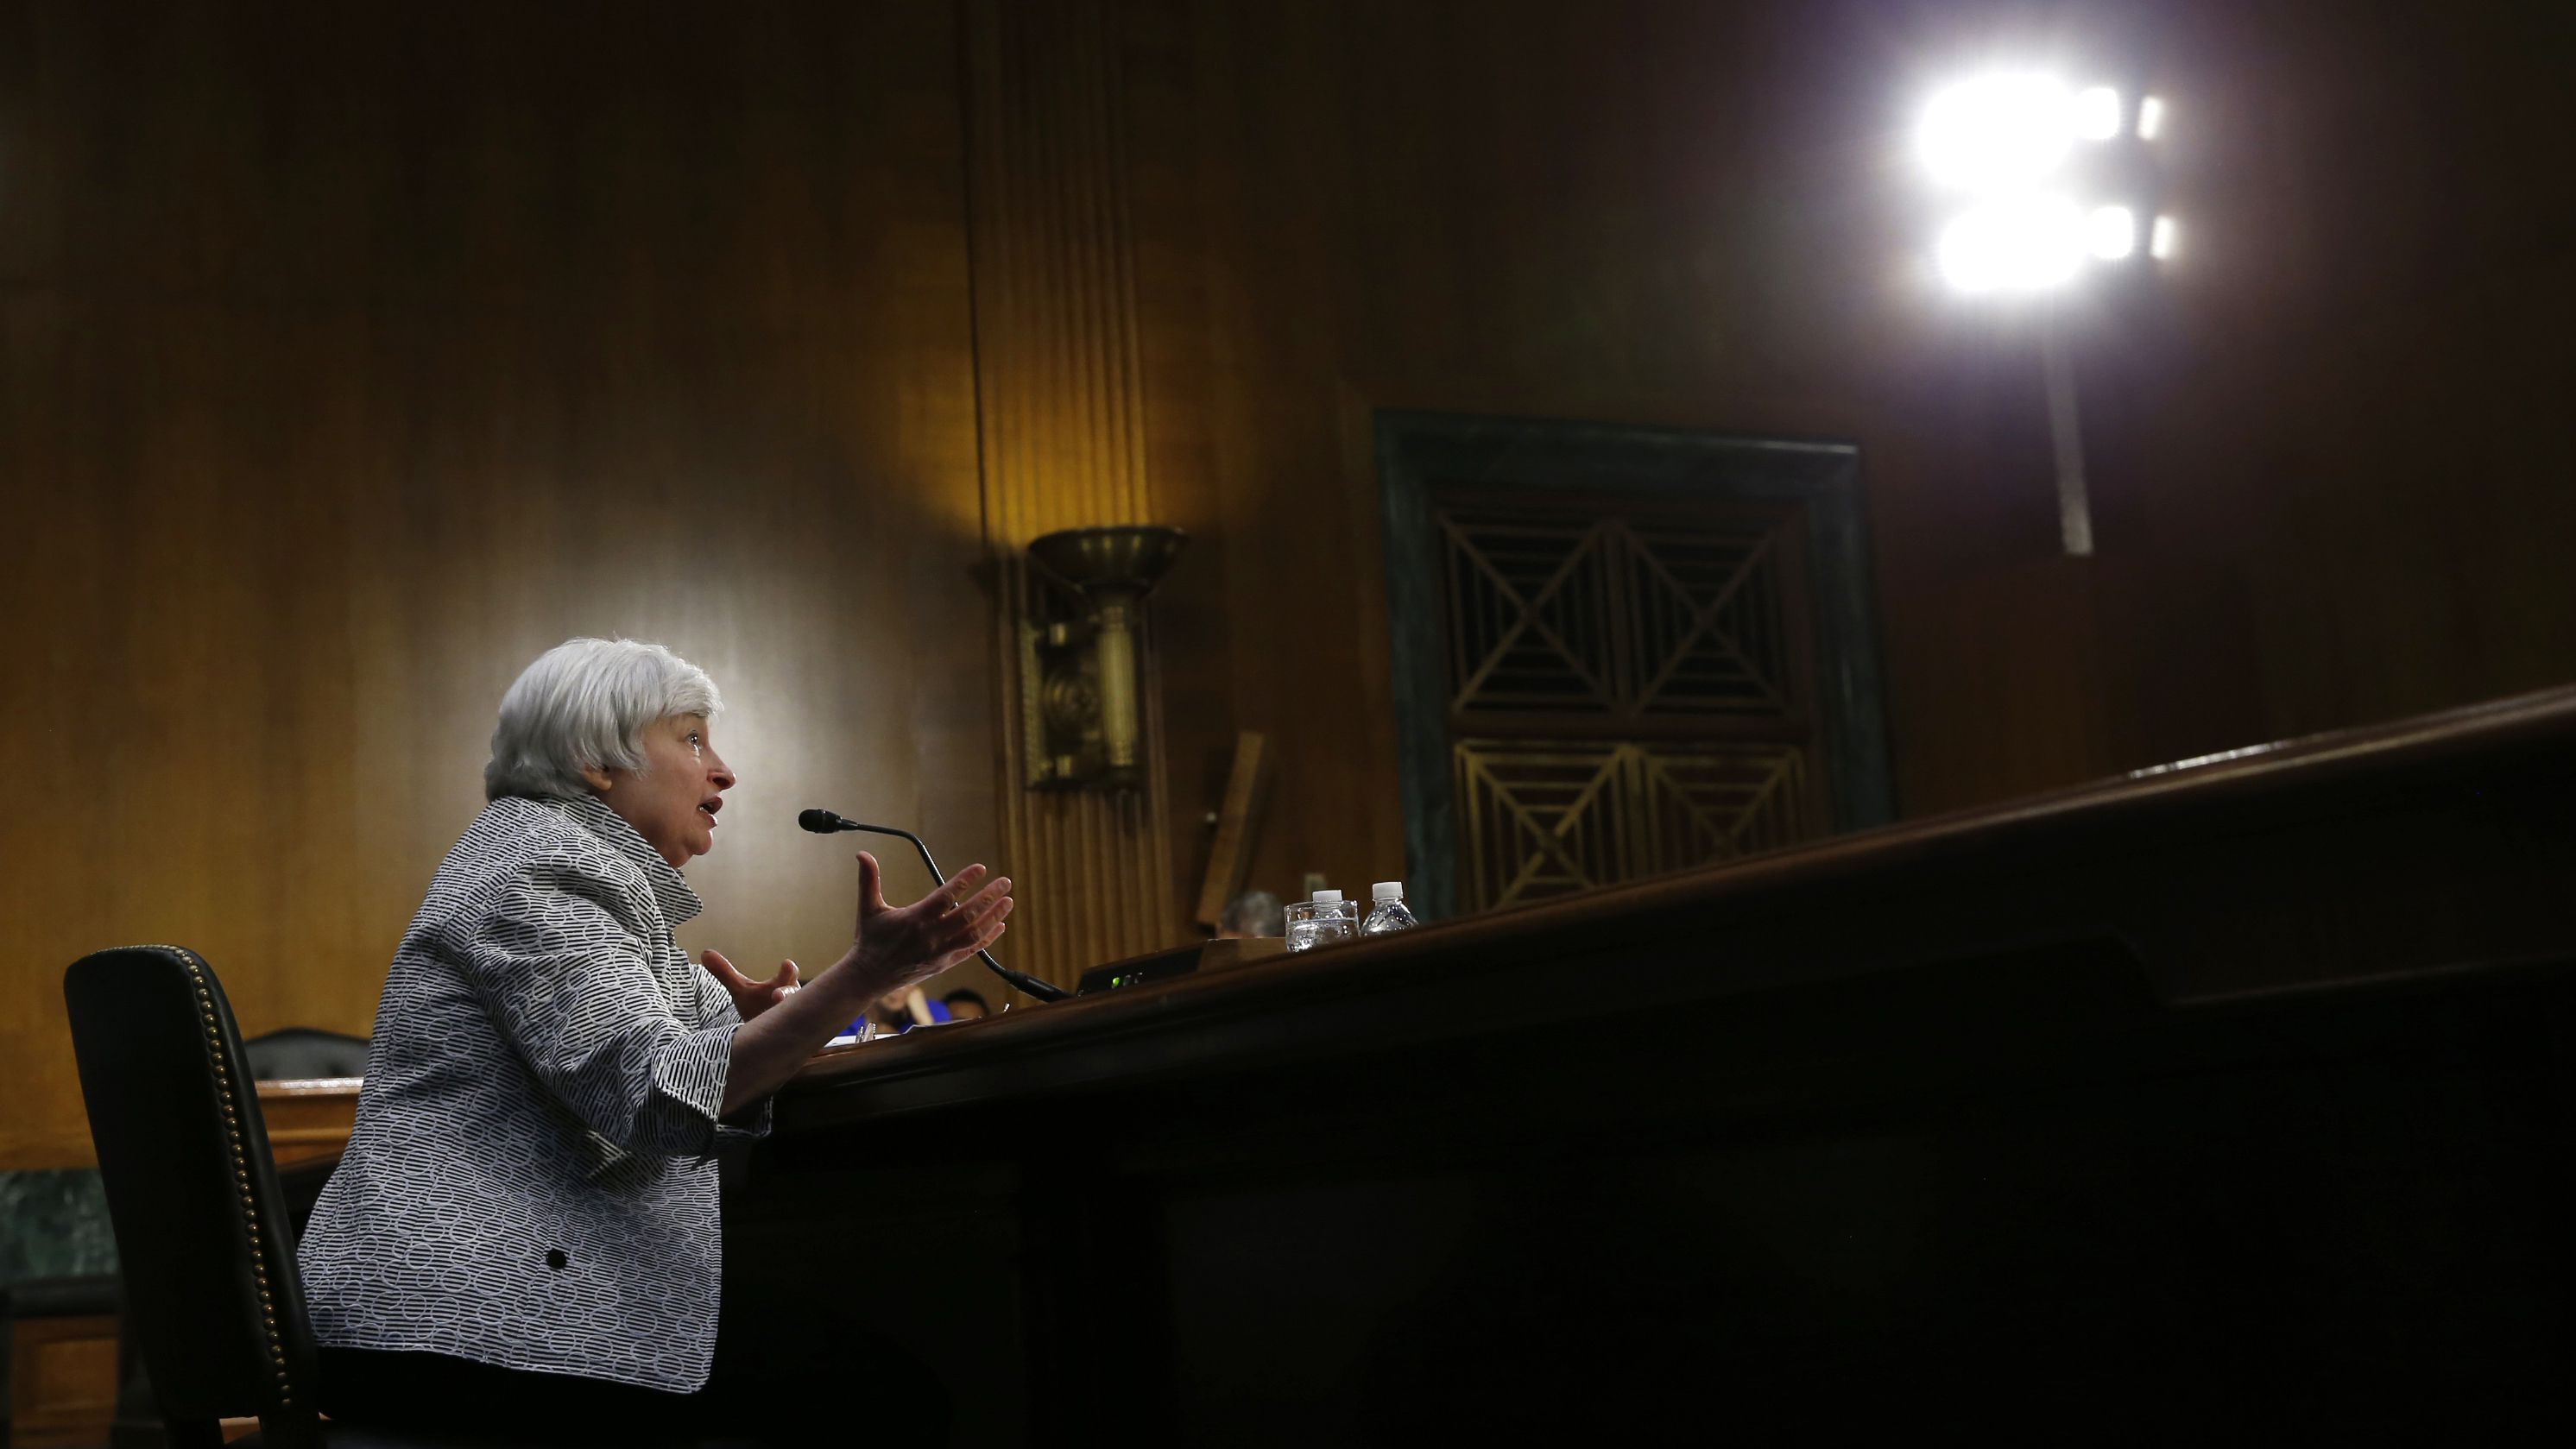 U.S. Federal Reserve Chair Janet Yellen testifies before the Senate Banking Committee on Capitol Hill in Washington July 15, 2014. The U.S. economic recovery remains incomplete, with a still-ailing job market and stagnant wages justifying loose monetary policy for the foreseeable future, Yellen told the Senate committee on Tuesday. REUTERS/Kevin Lamarque (UNITED STATES - Tags: POLITICS BUSINESS TPX IMAGES OF THE DAY)